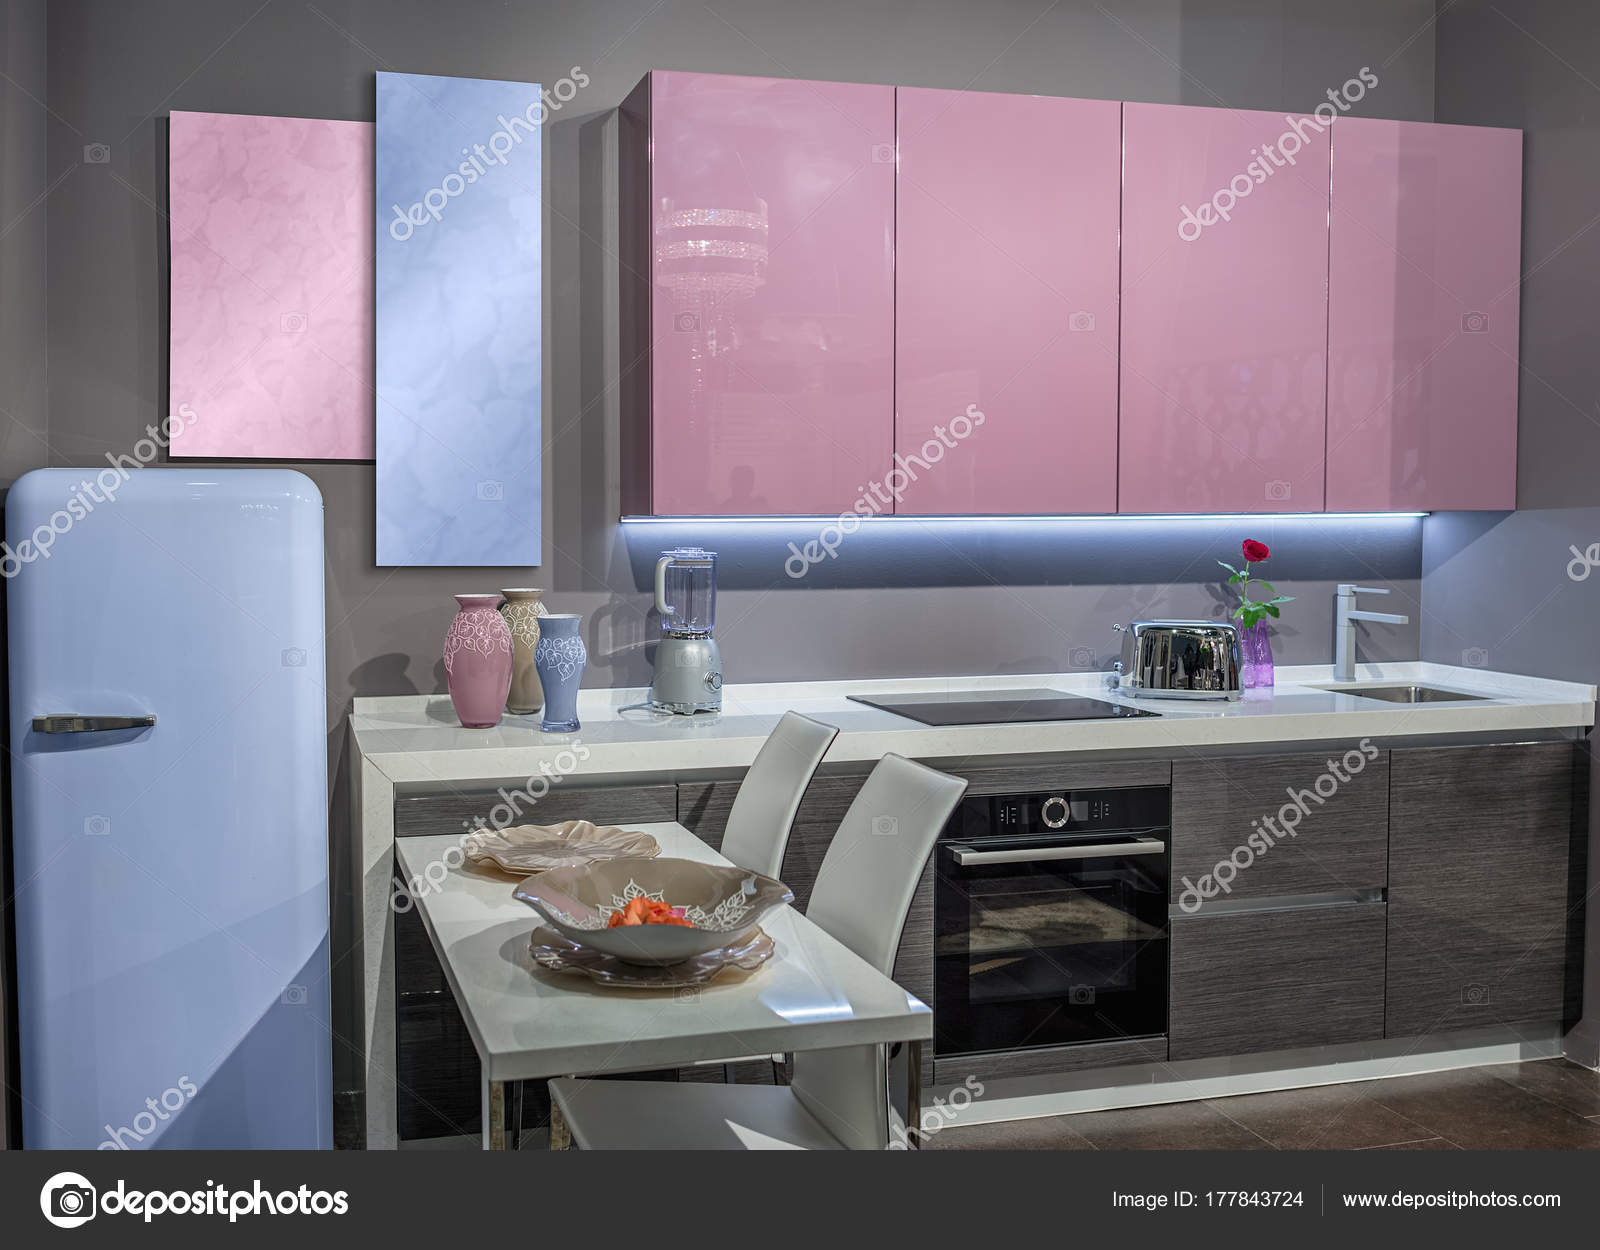 kitchen with a pink color